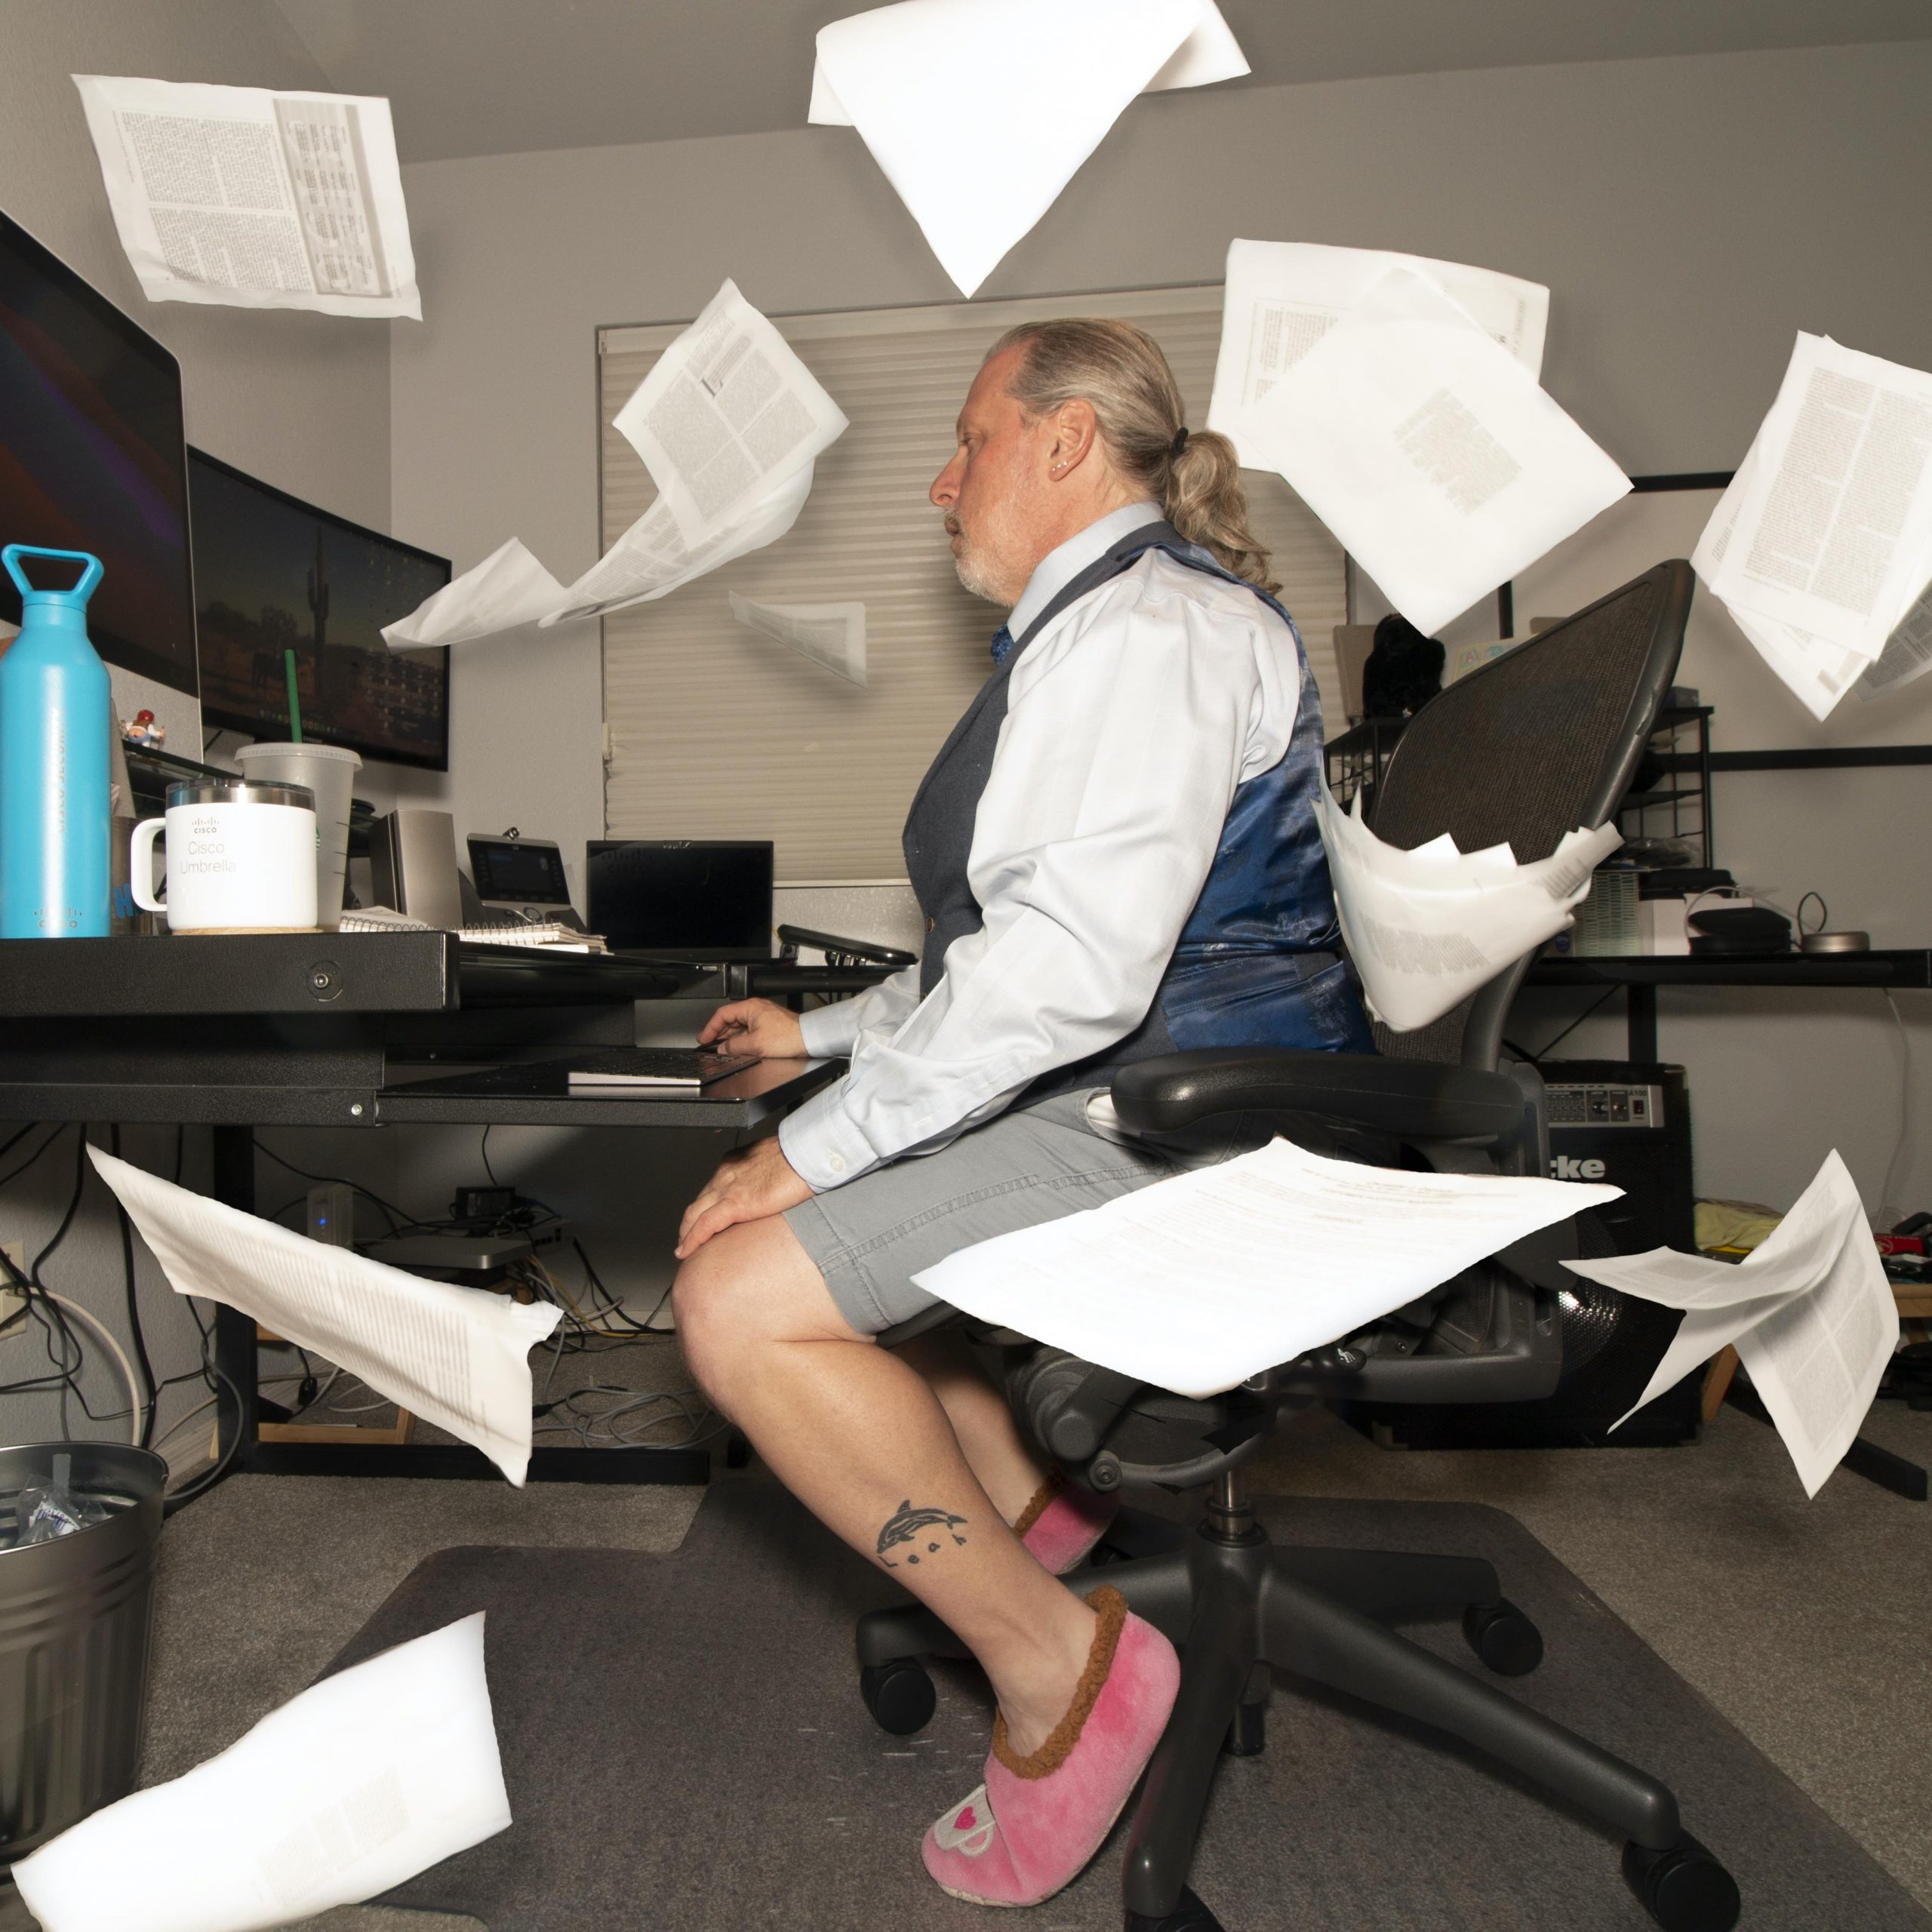 Ken sits at his desk as papers fall all around him.